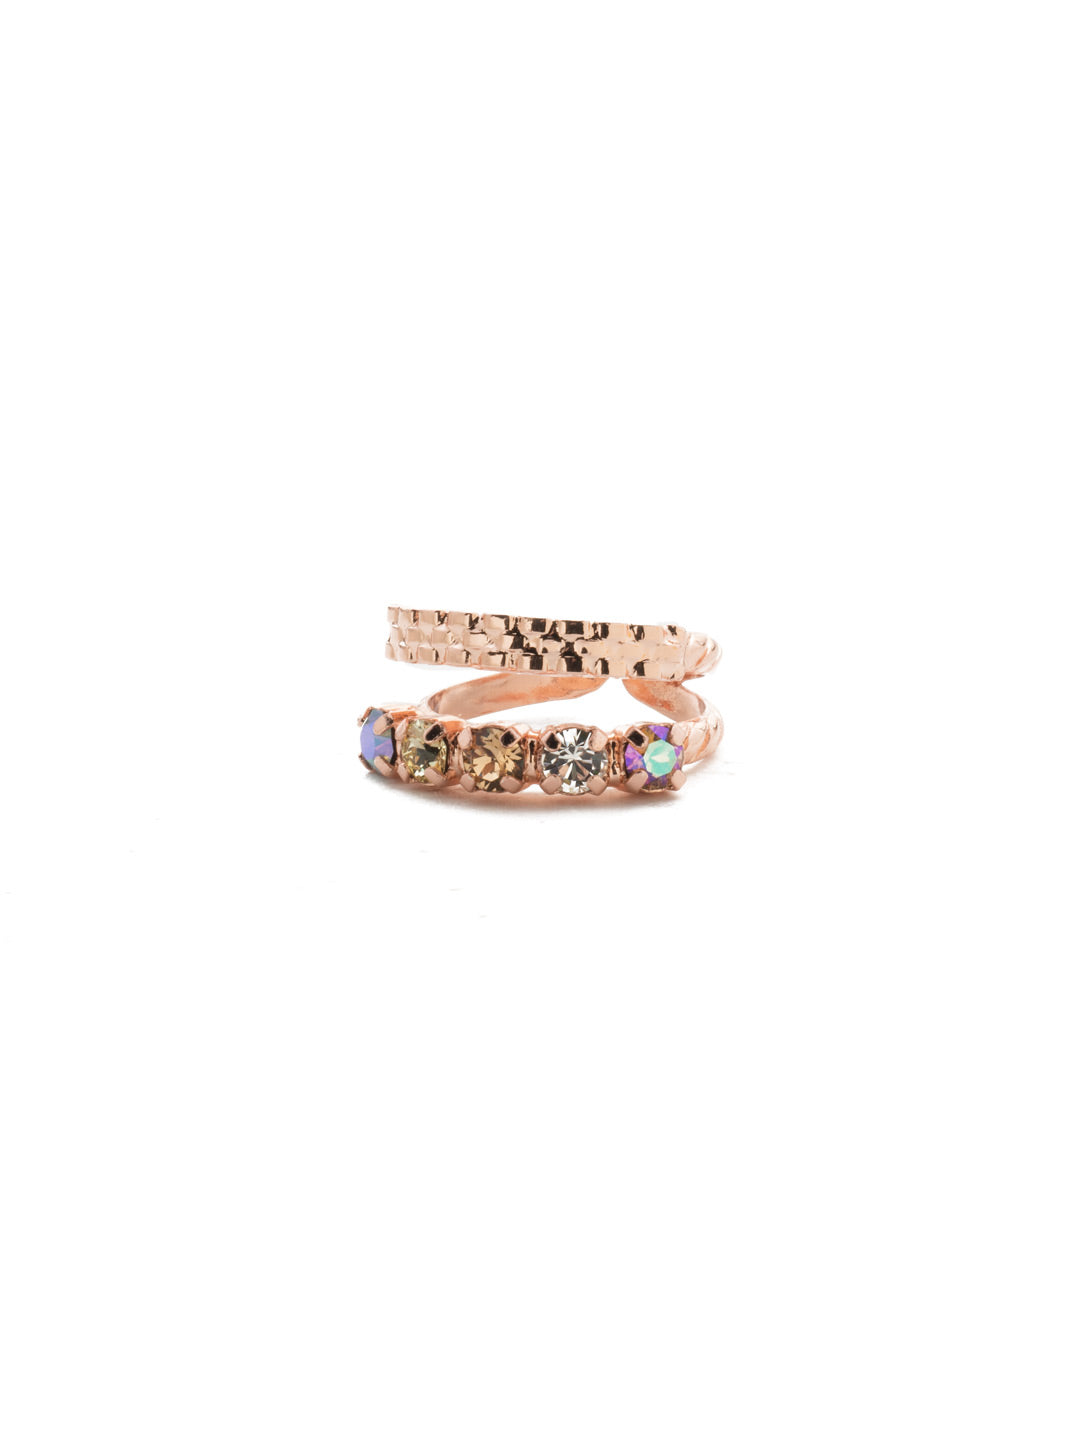 Luann Stacked Ring - REN9RGROG